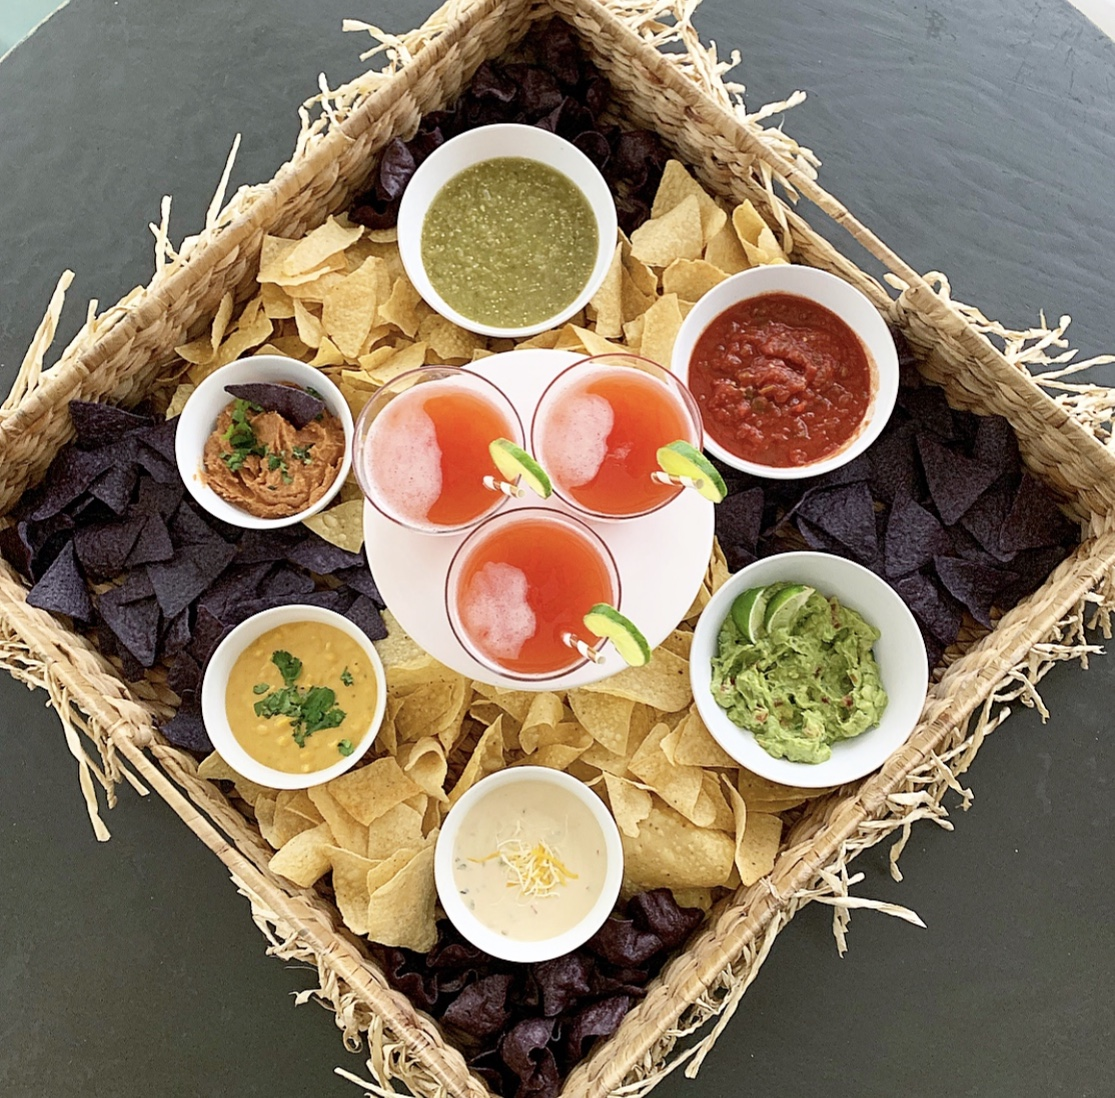 chips and dips tray